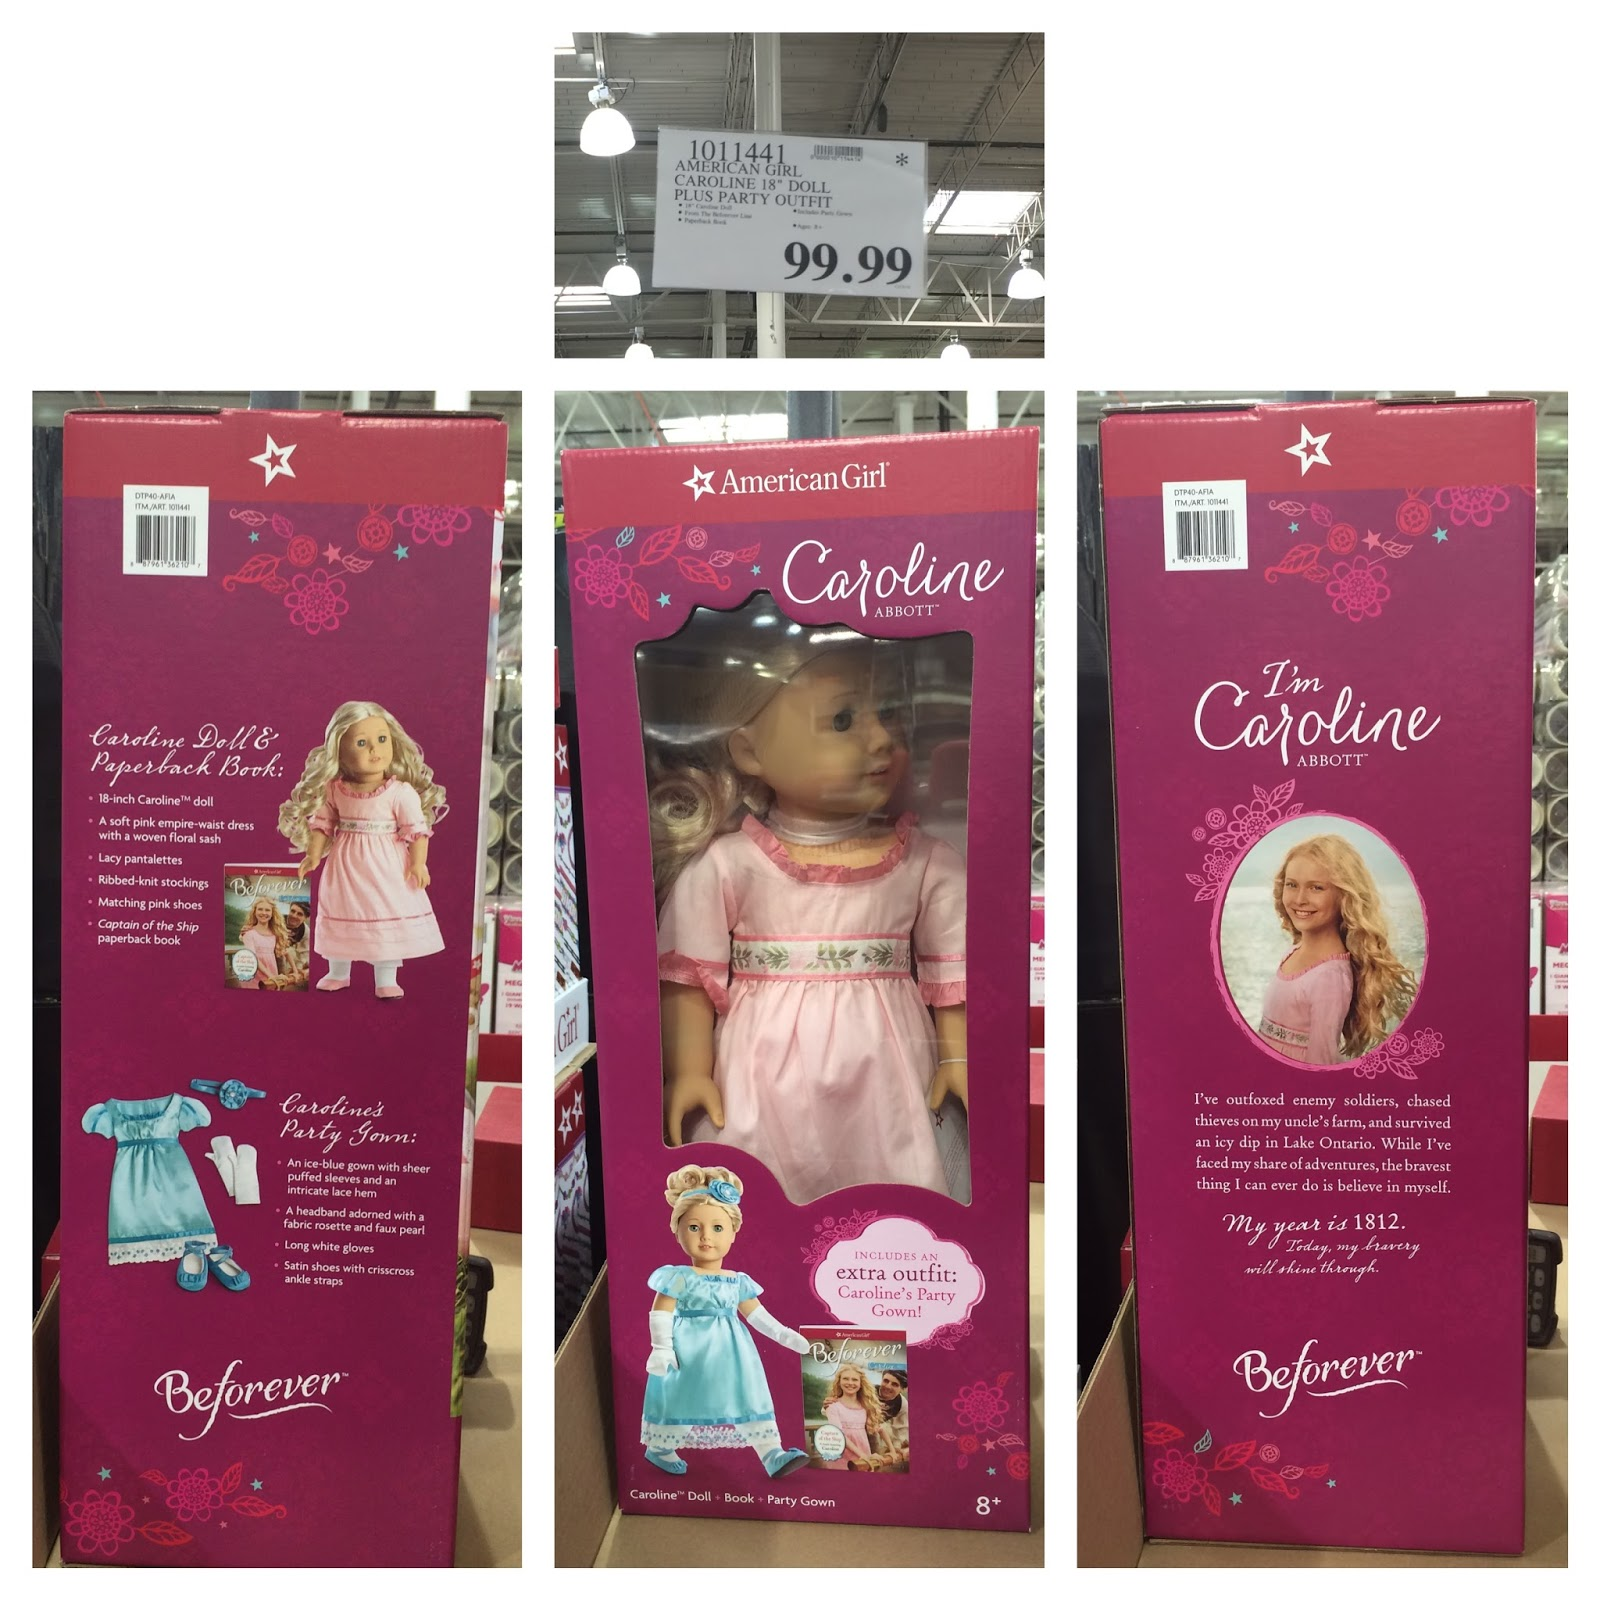 aa068828a the Costco Connoisseur  Save on American Girl at Costco!